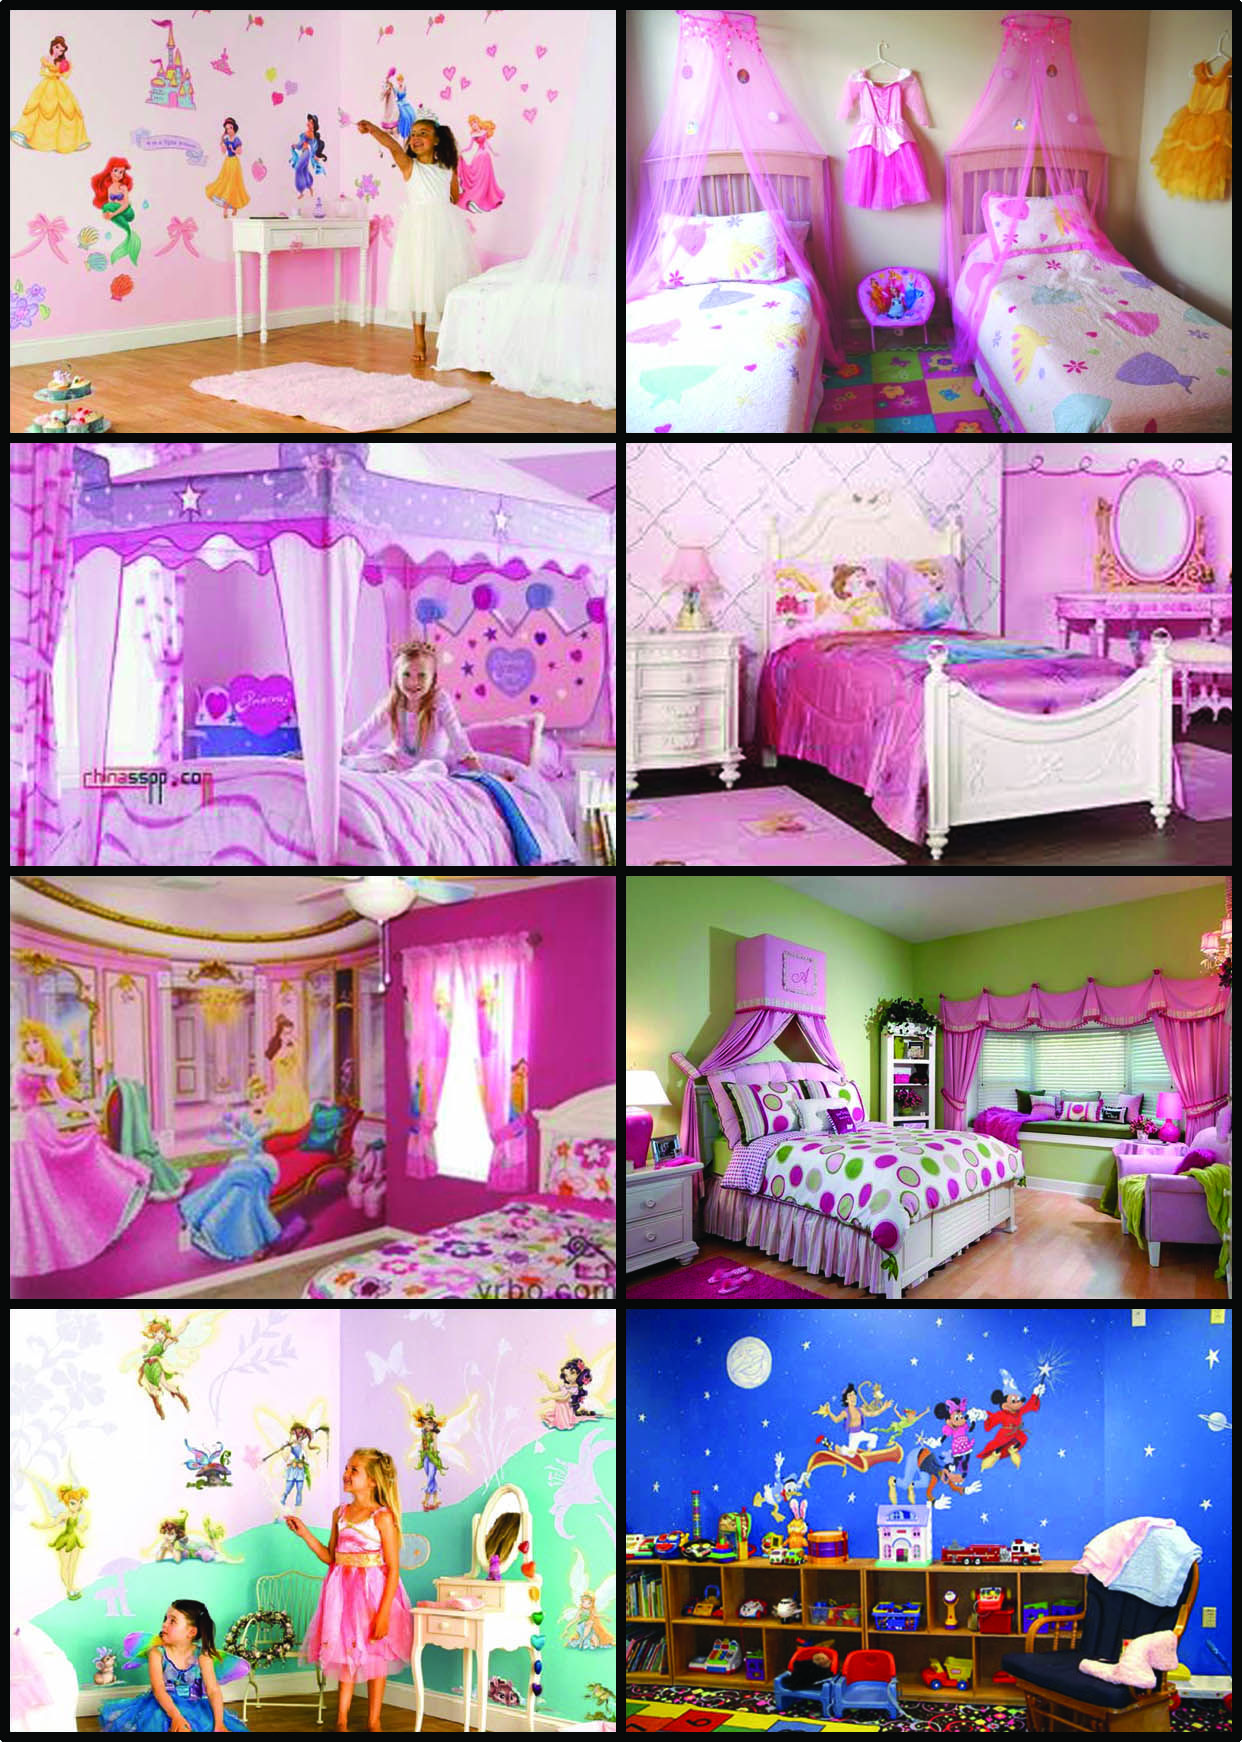 Disney Inspired Kids Room Disney Princess Bedroom Princess Bedroom Decor Princess Room Decor